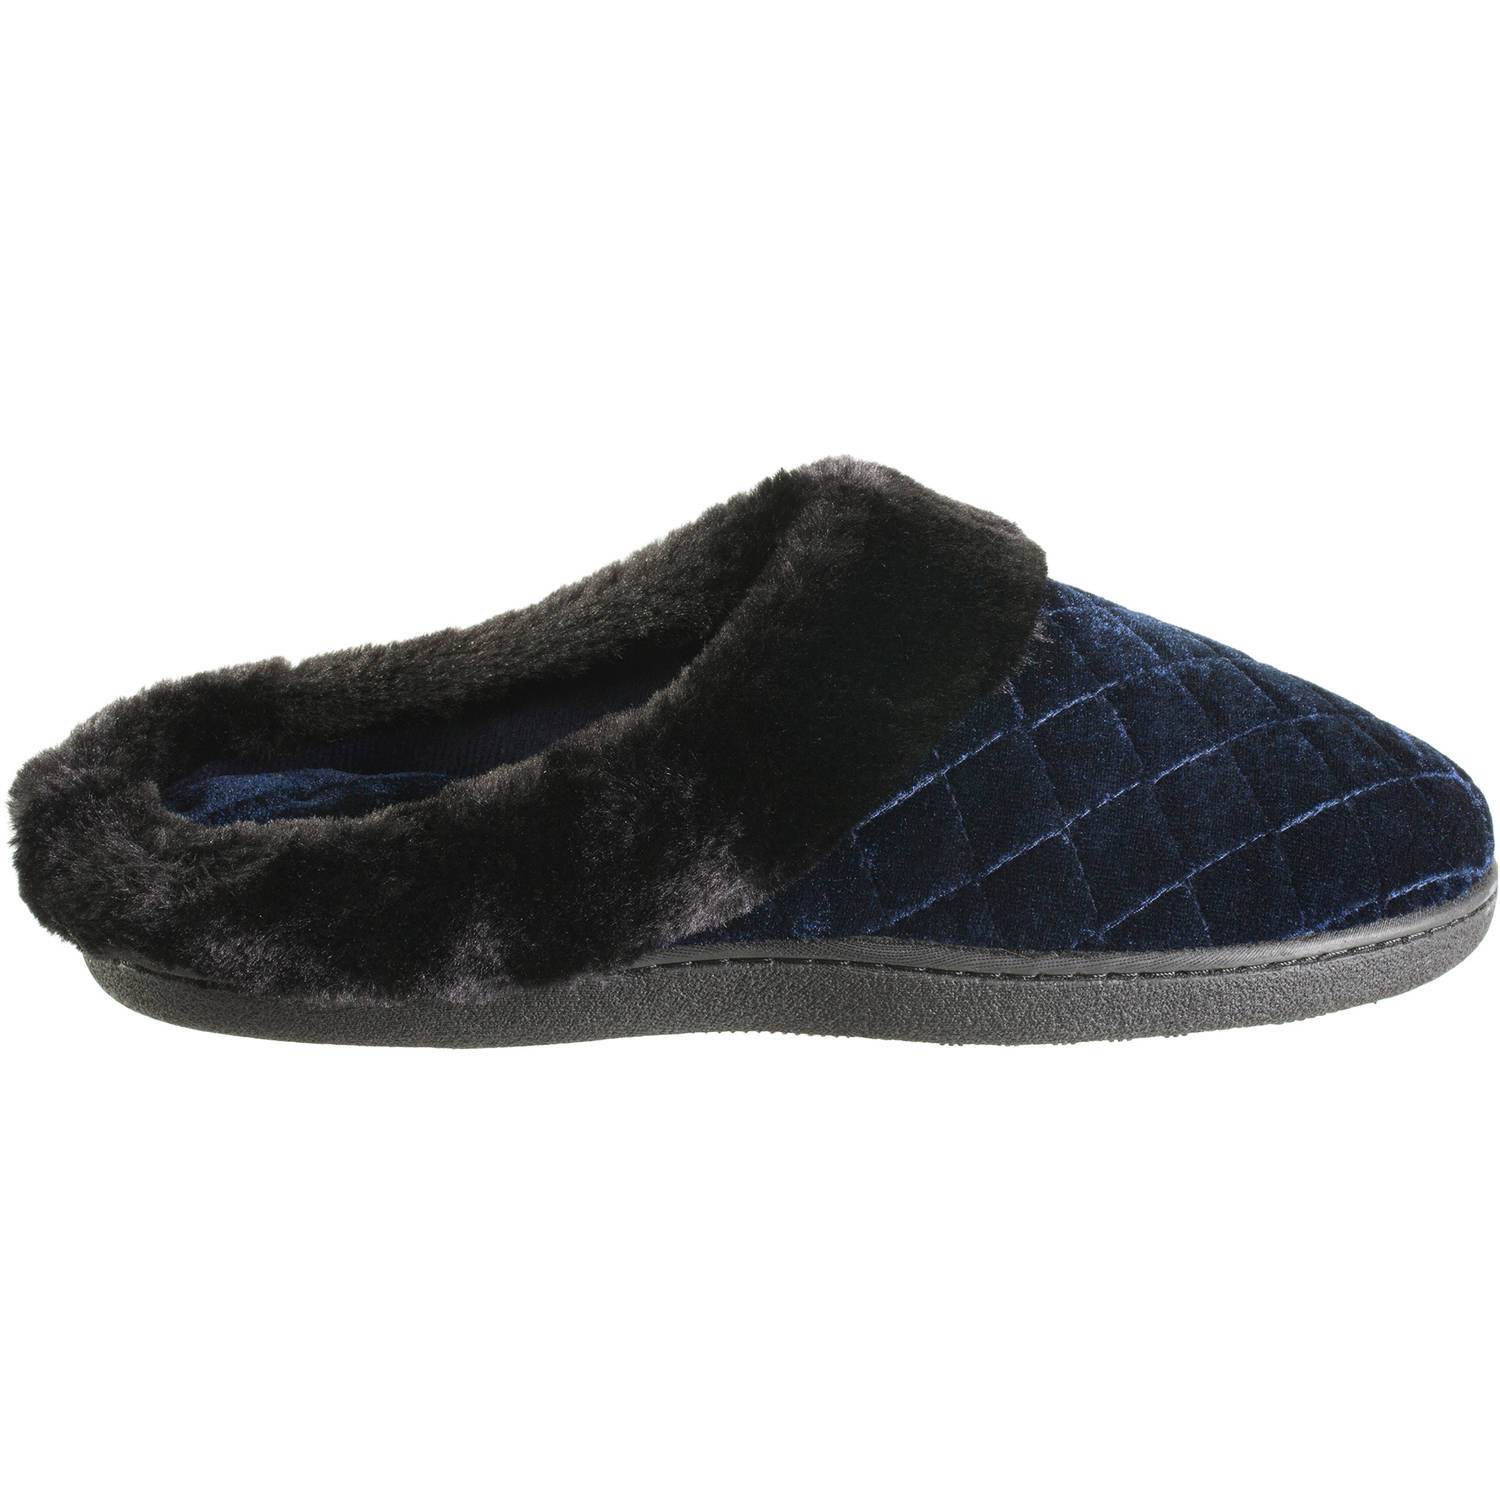 Essentials by Isotoner Women's Velour Coco Hoodback Slipper